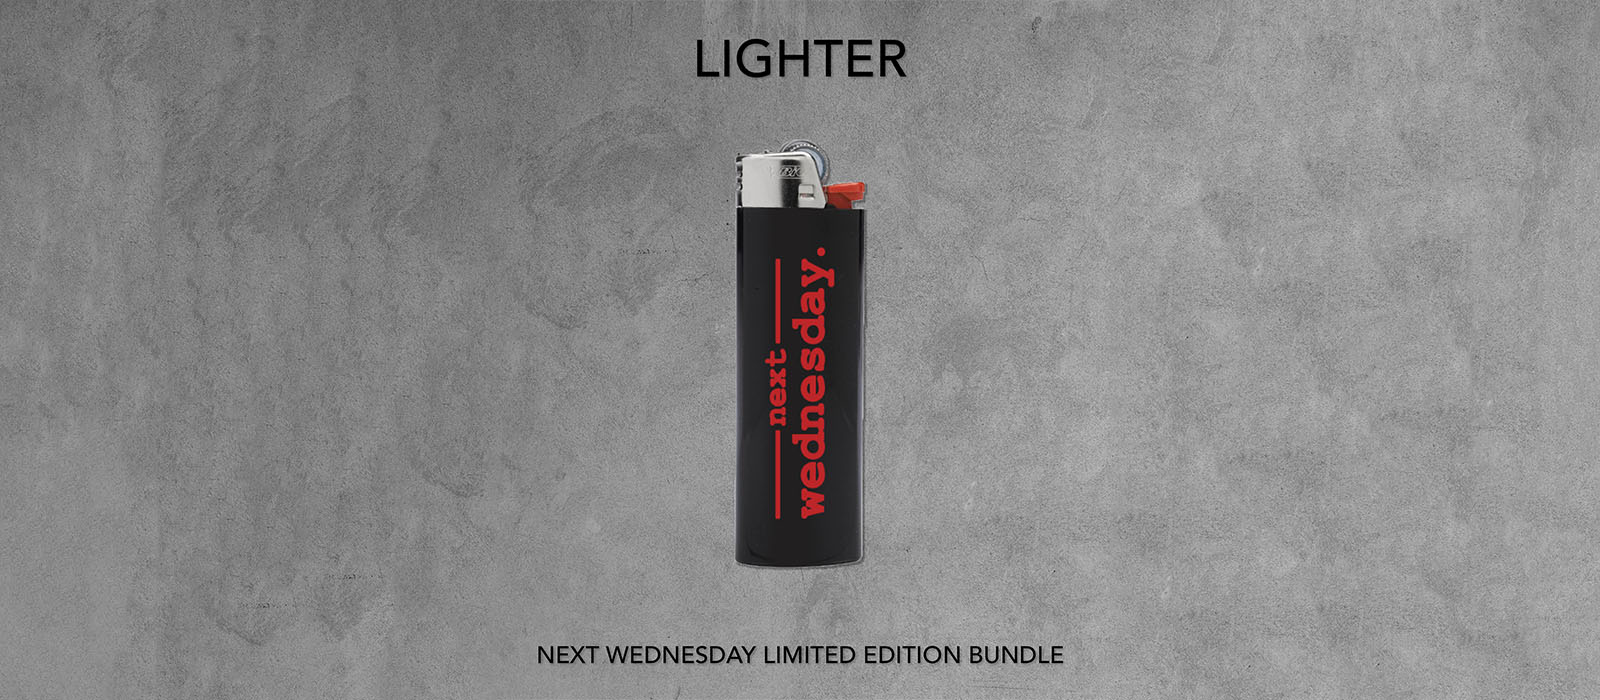 Next Wed Lighter